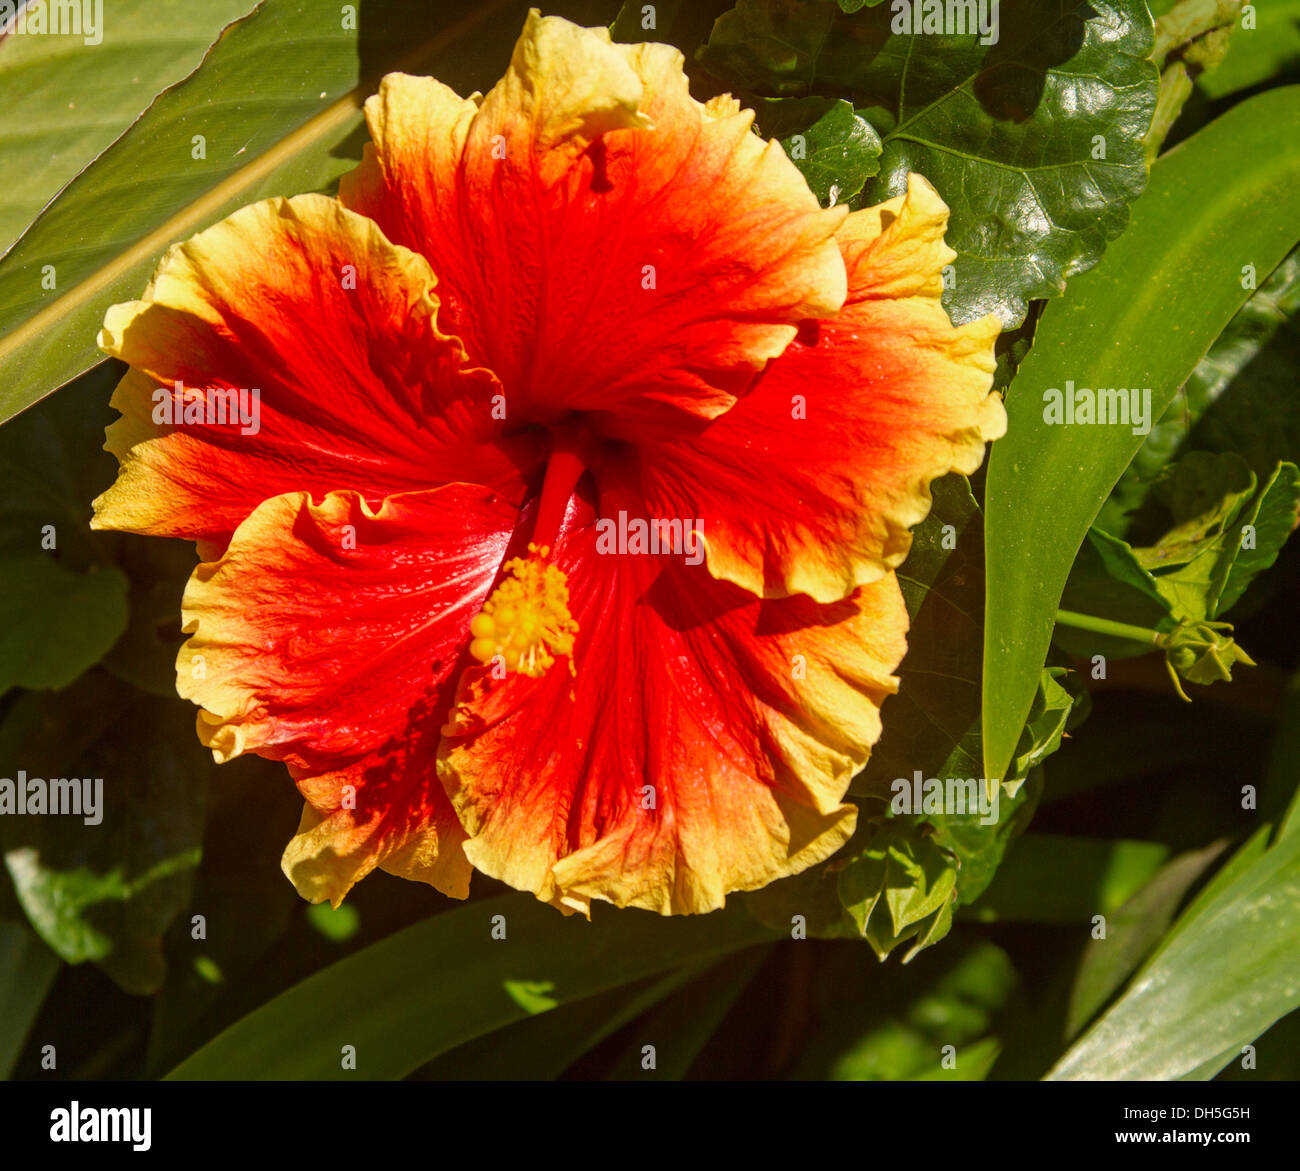 Spectacular Vivid Red Hawaiian Hibiscus Flower With Ruffled Edges Trimmed Golden Yellow On Background Of Green Foliage